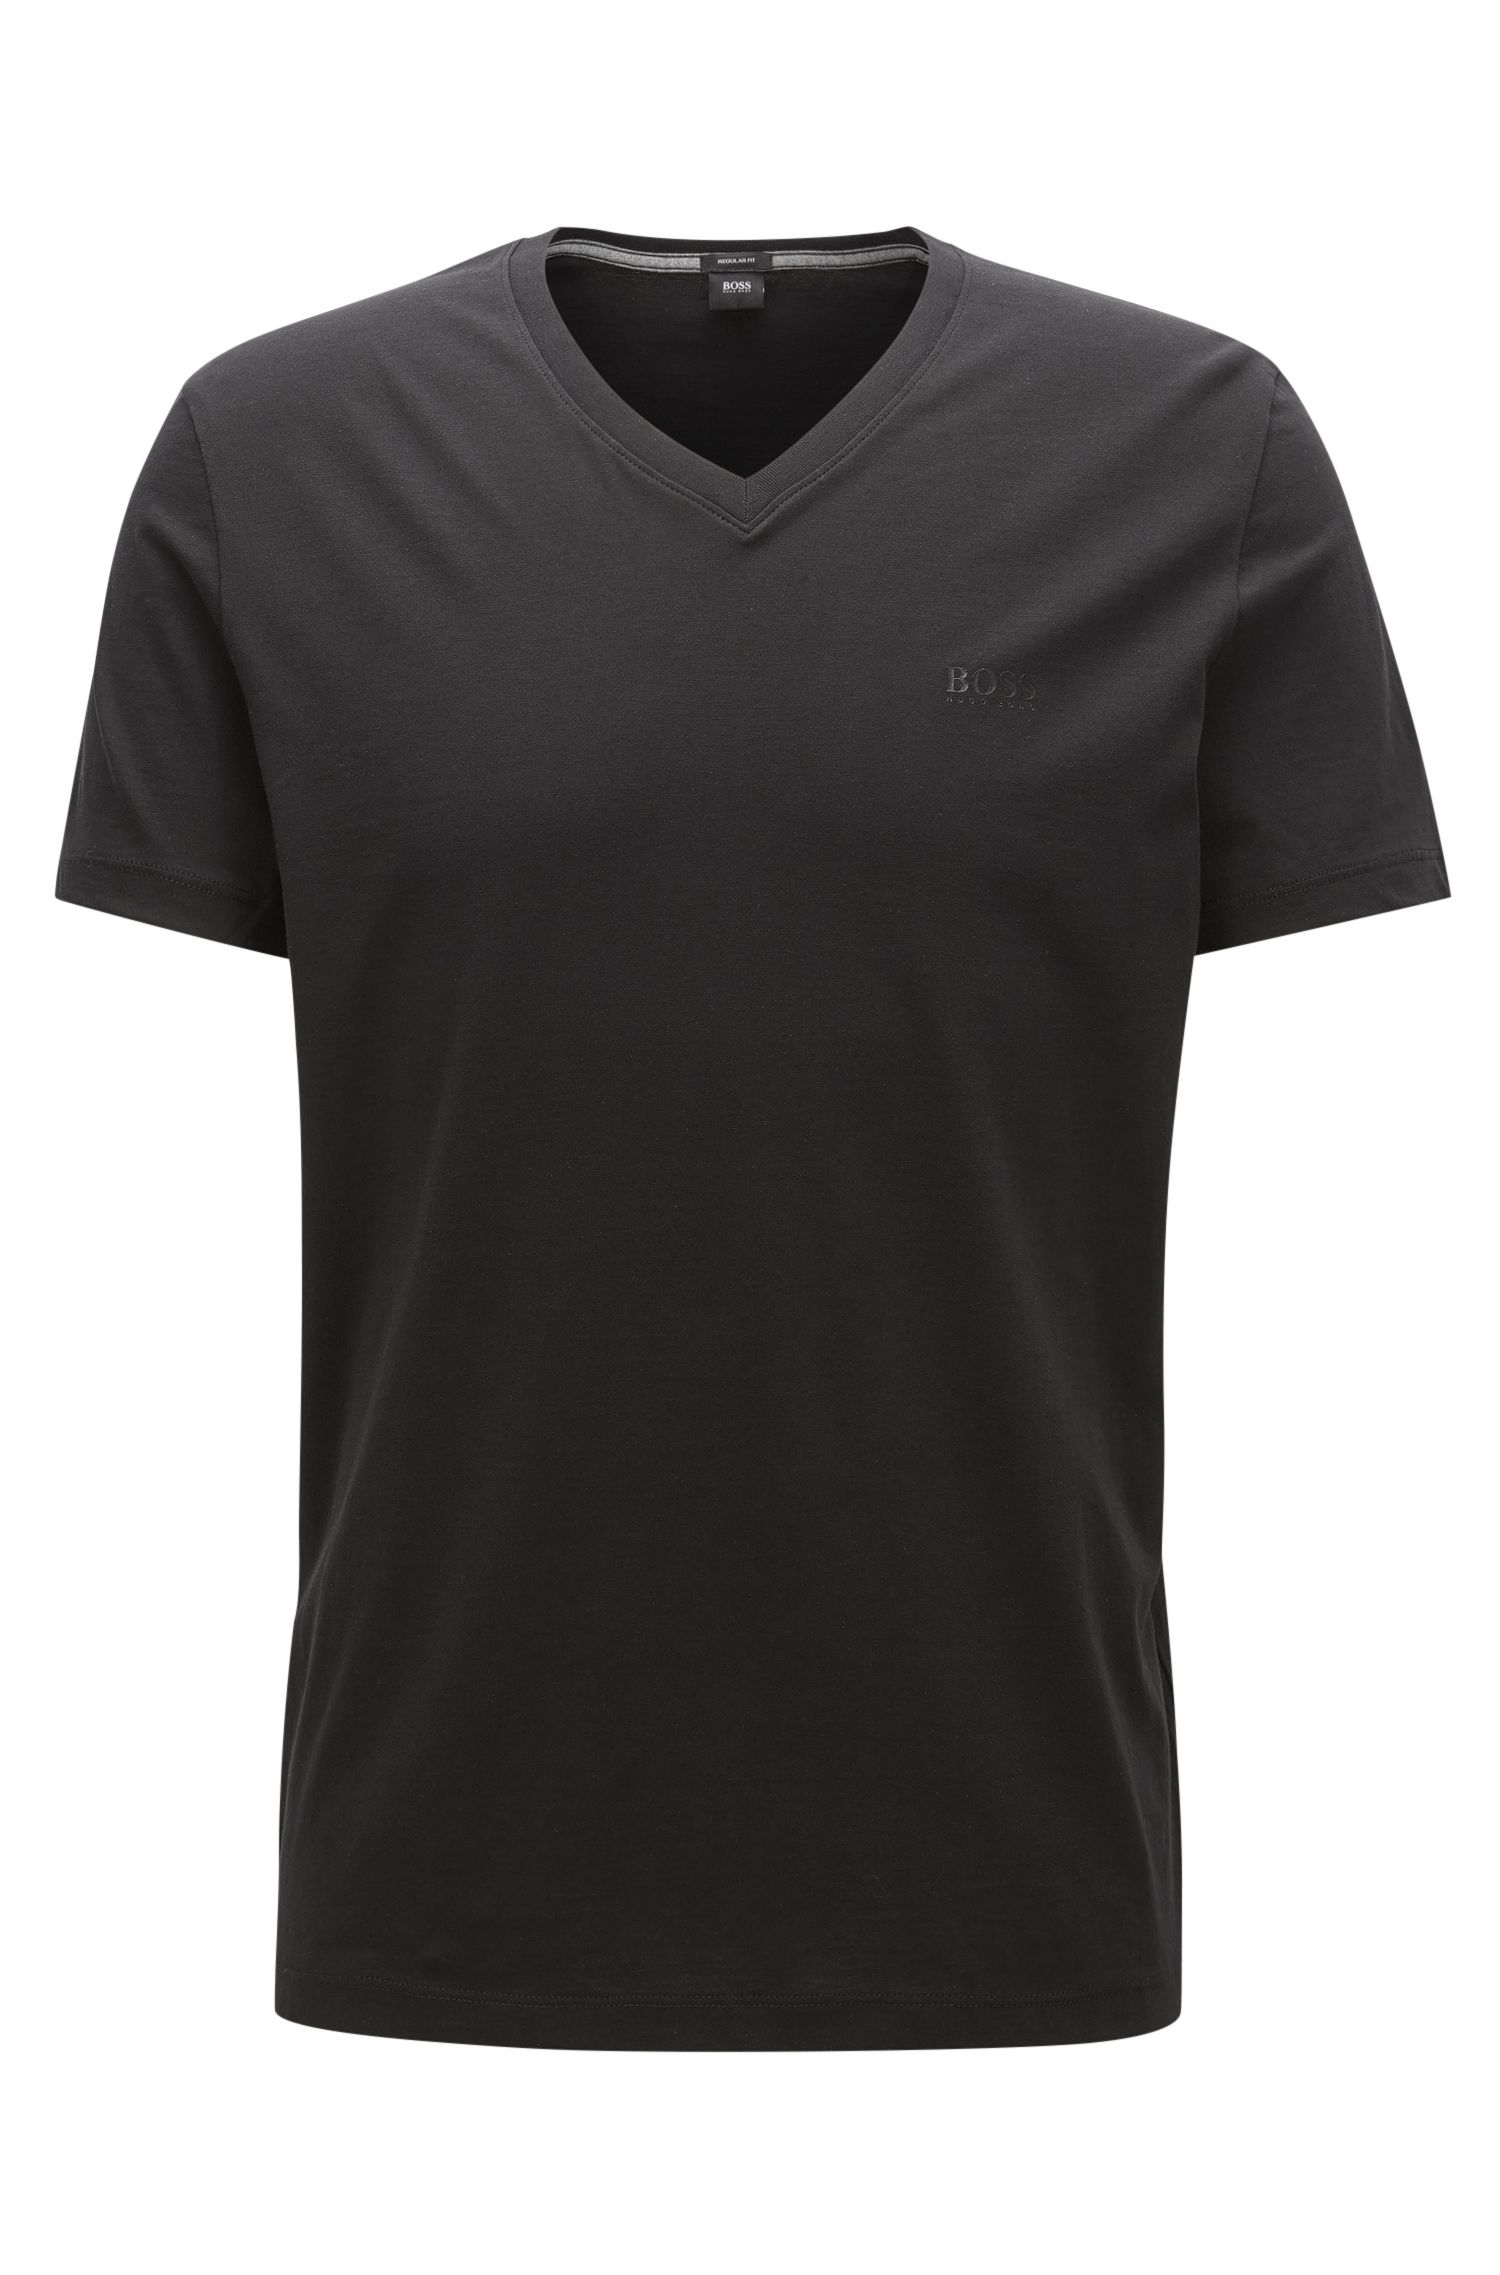 Regular-fit T-shirt in single jersey, Black